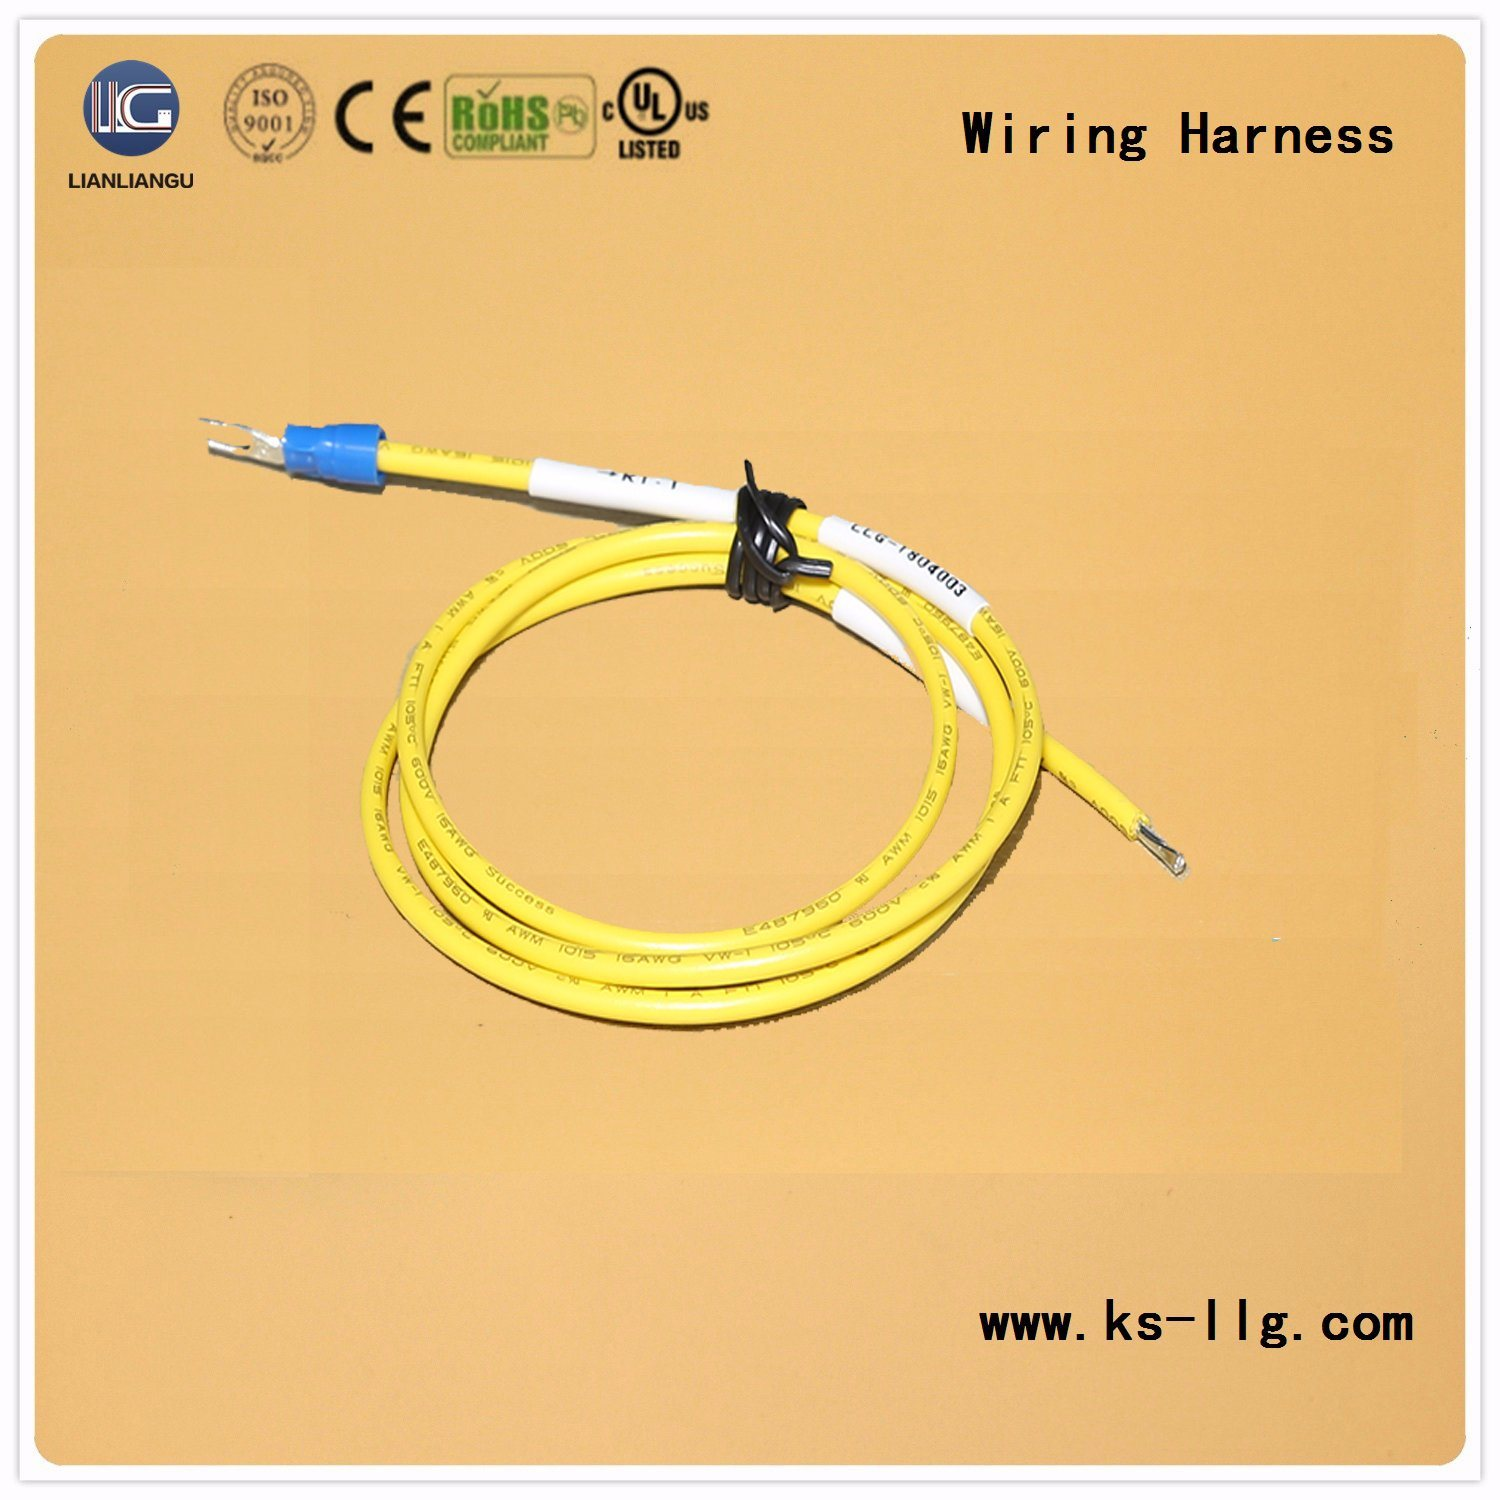 China Power Cord Wiring Harness OEM/ODM Cable Assembly - China ...